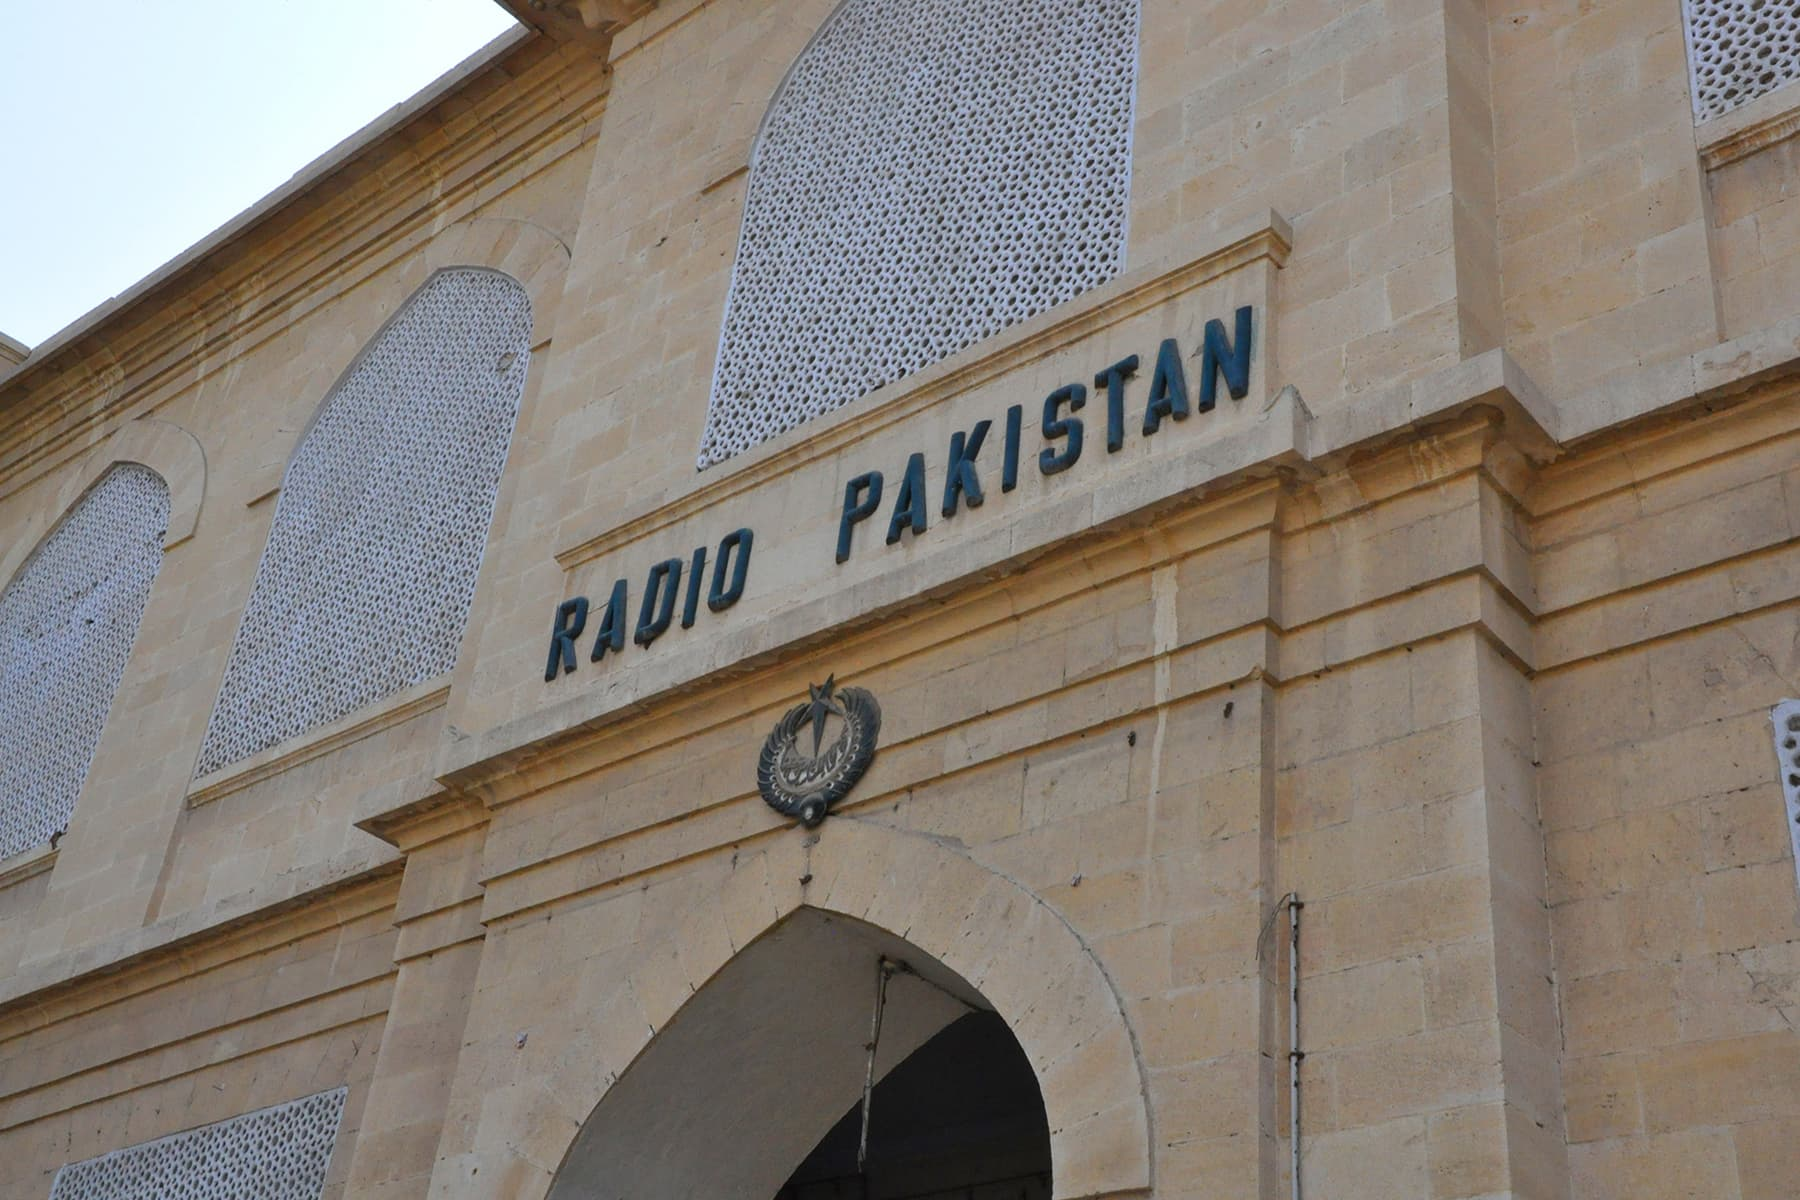 Radio Pakistan – one of the most iconic buildings of the era.